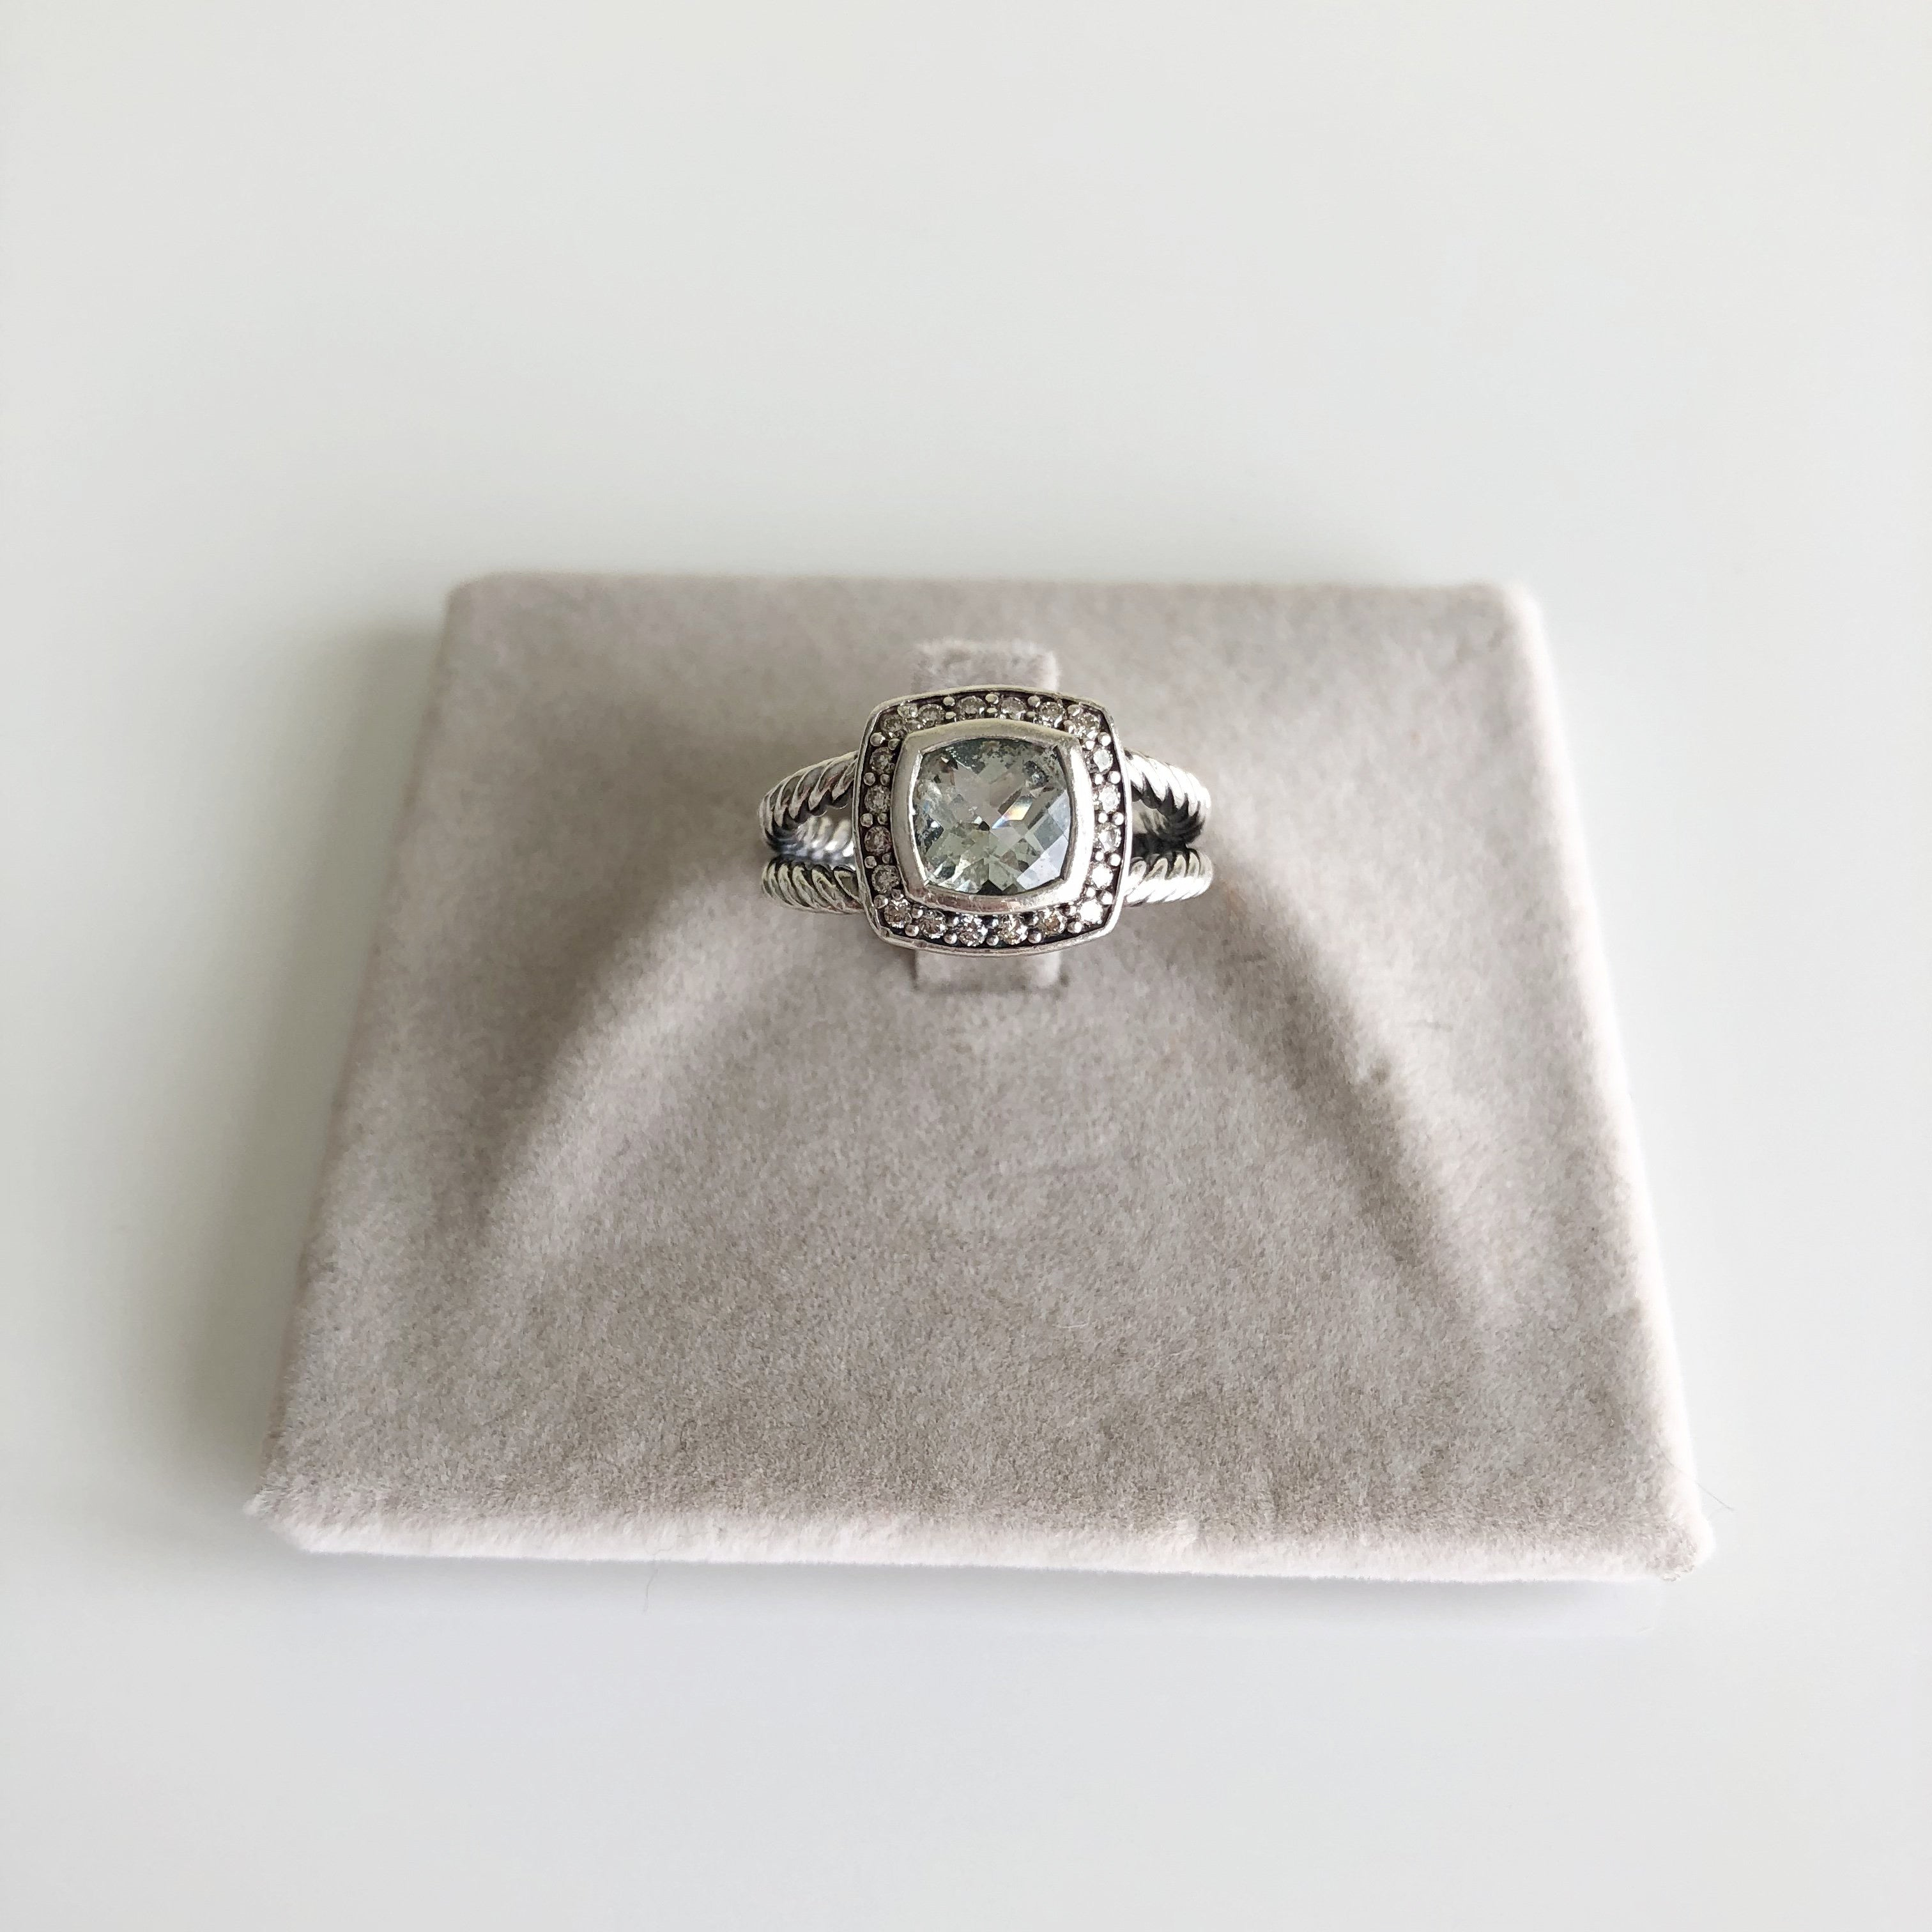 Authentic DAVID YURMAN  Prasiolite Diamond Ring